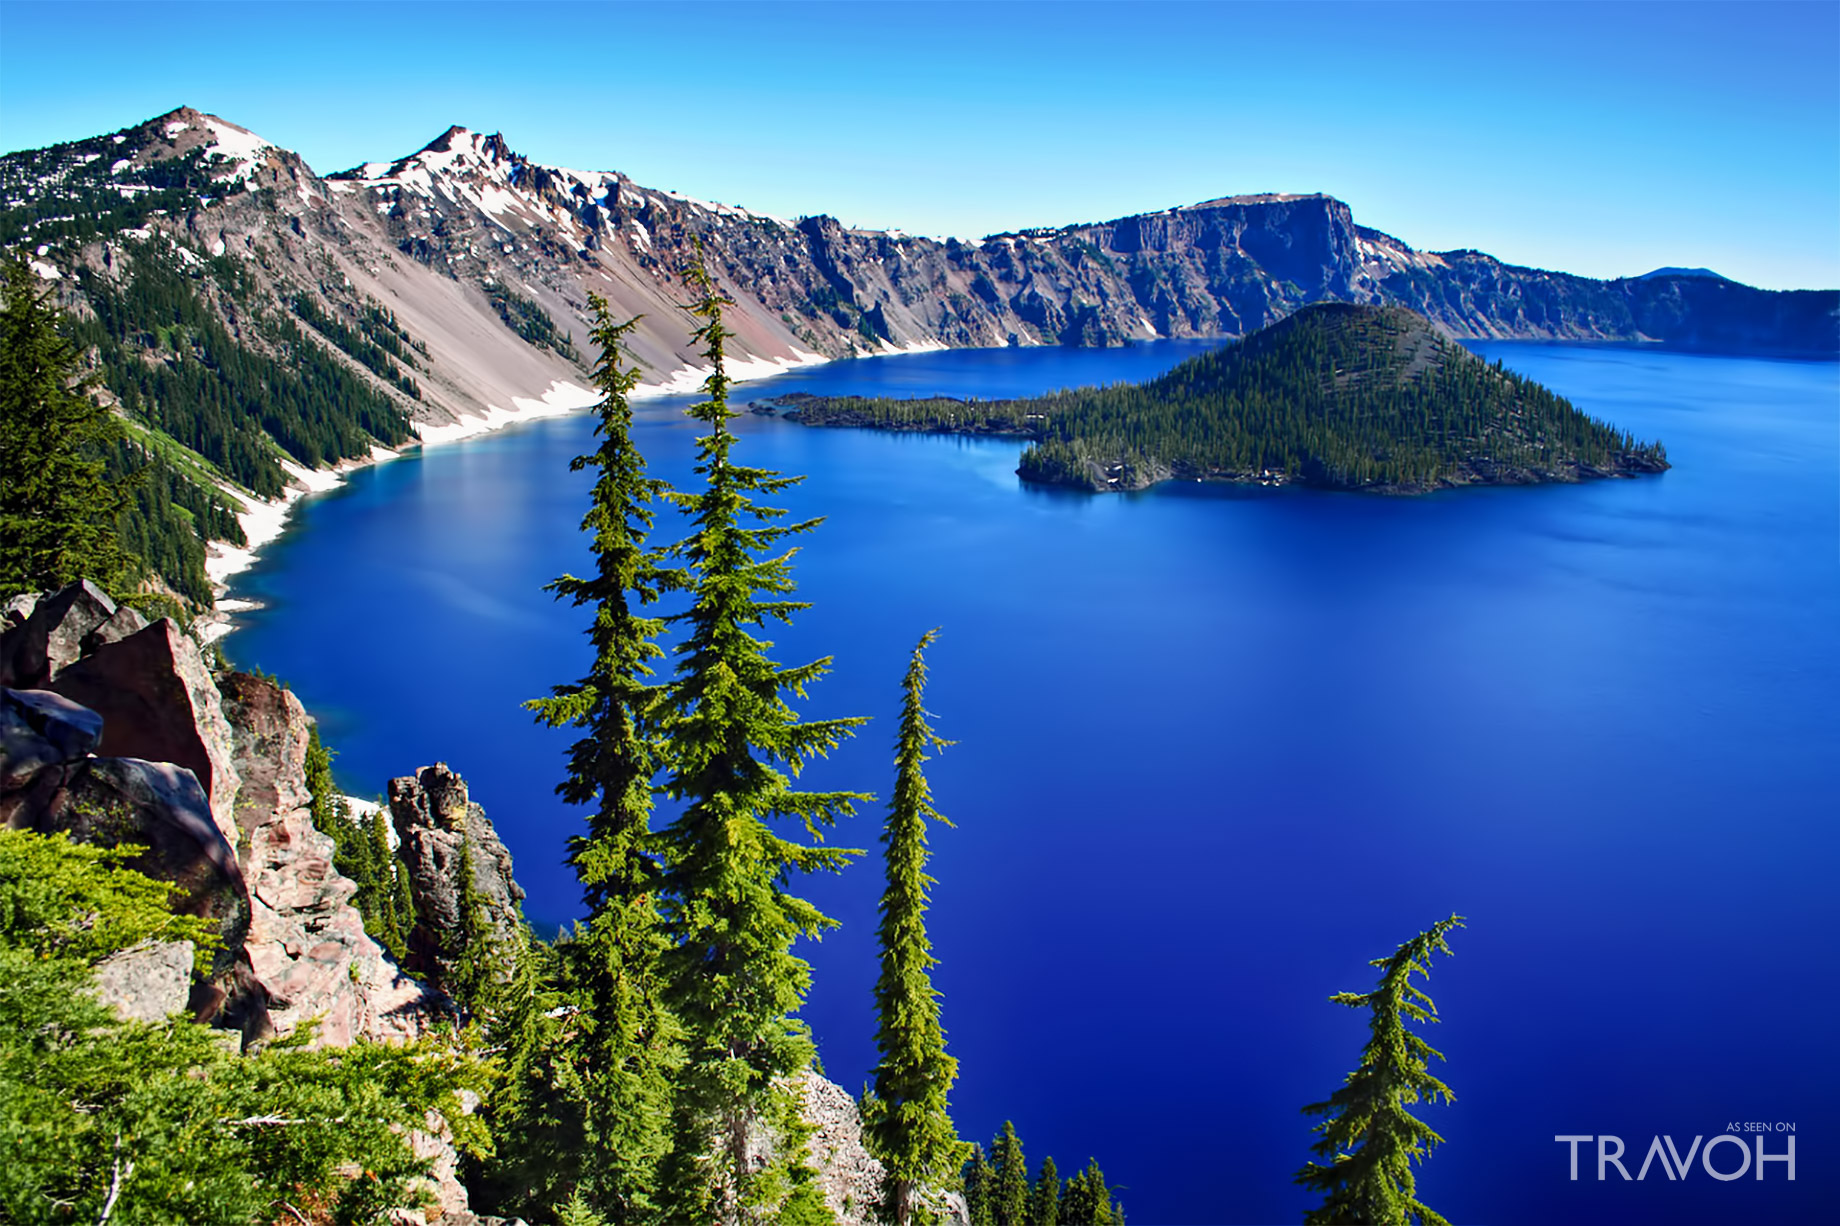 The Deep Blue Crater Lake in Oregon, USA